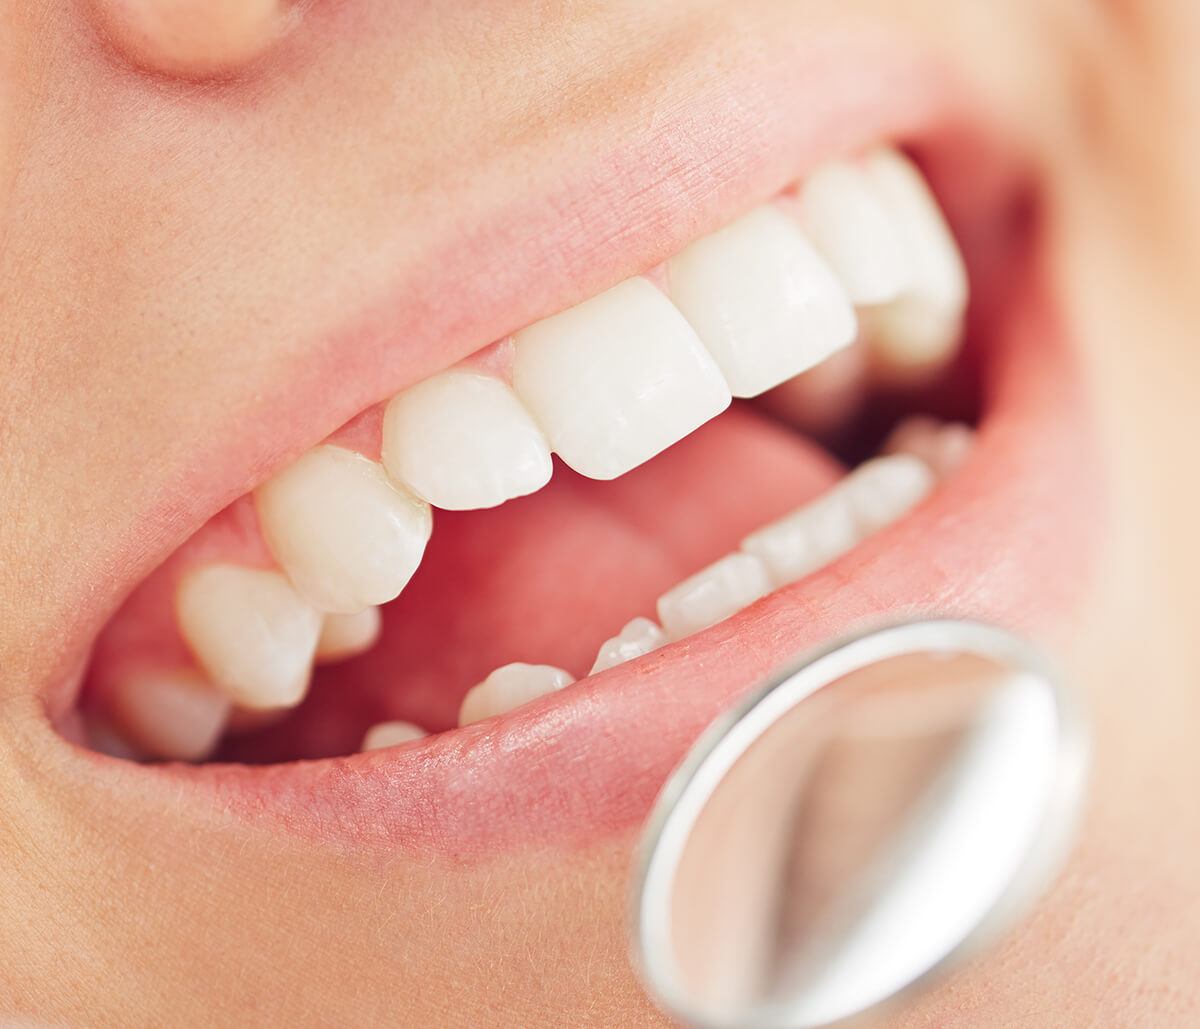 Keep Your Smile With Cosmetic Dental Treatments in Franklin Area